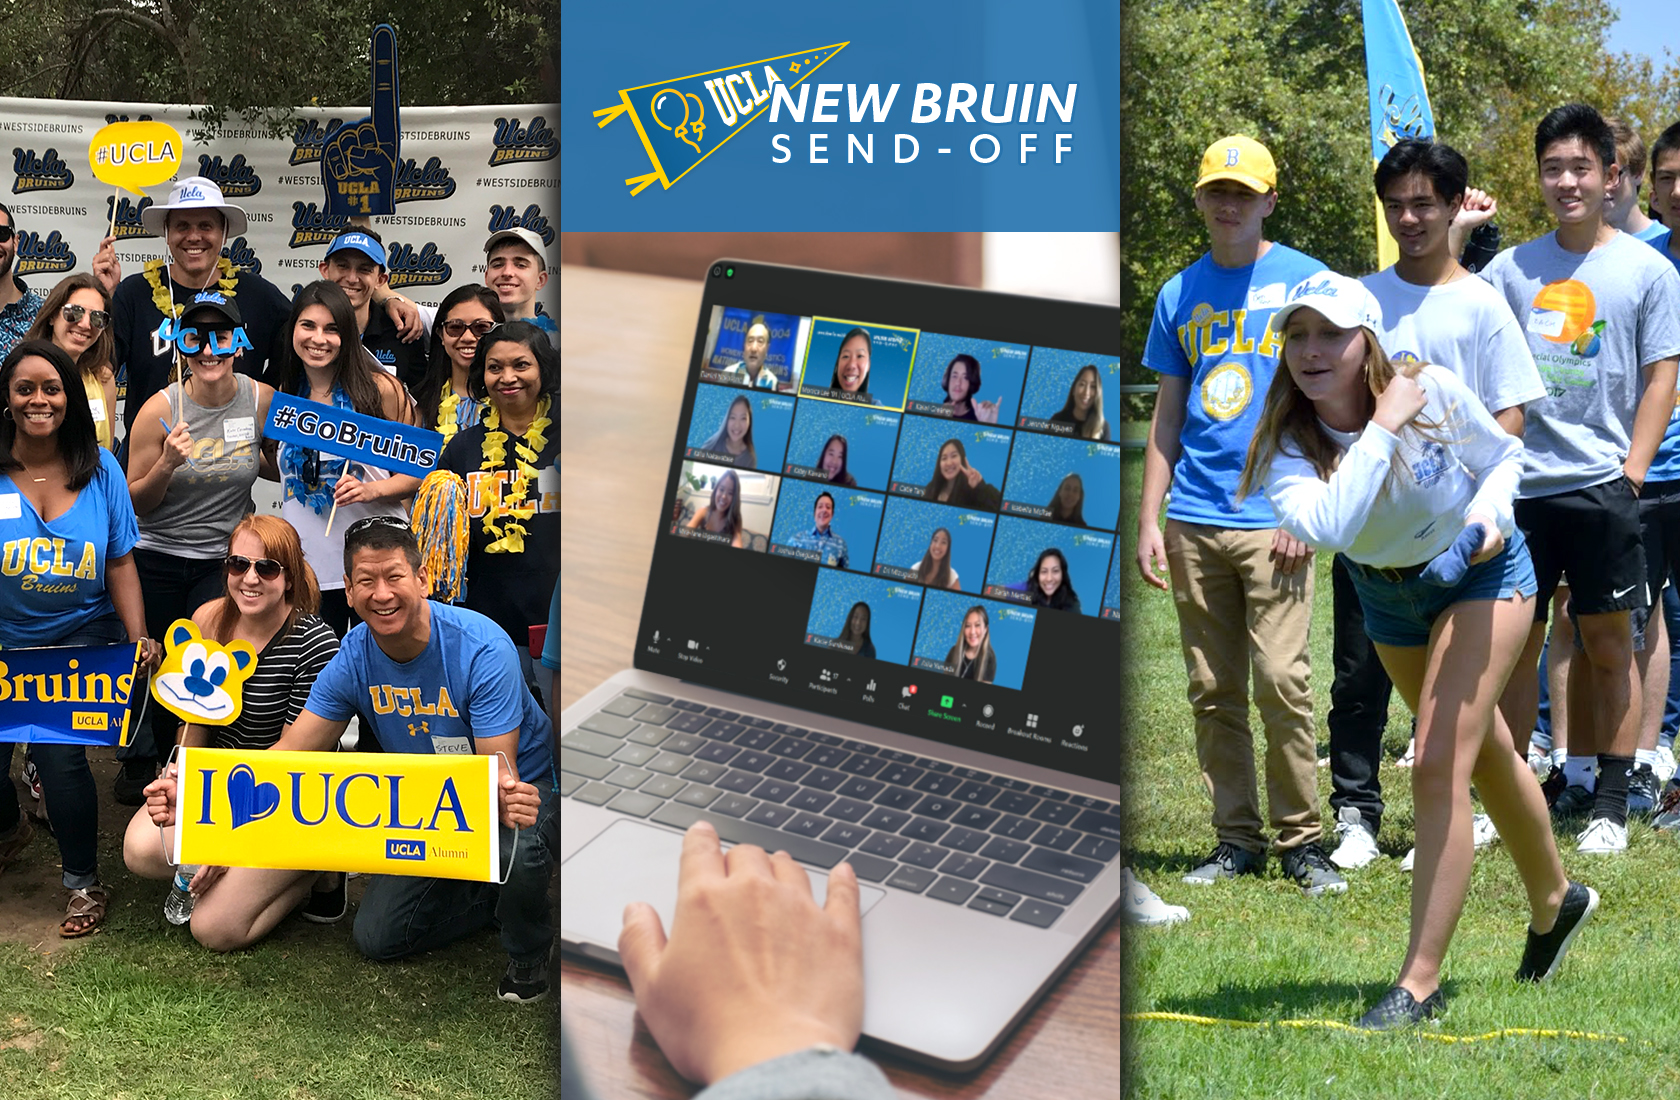 Images of people enjoying New Bruin Send-offs virtually and in person.